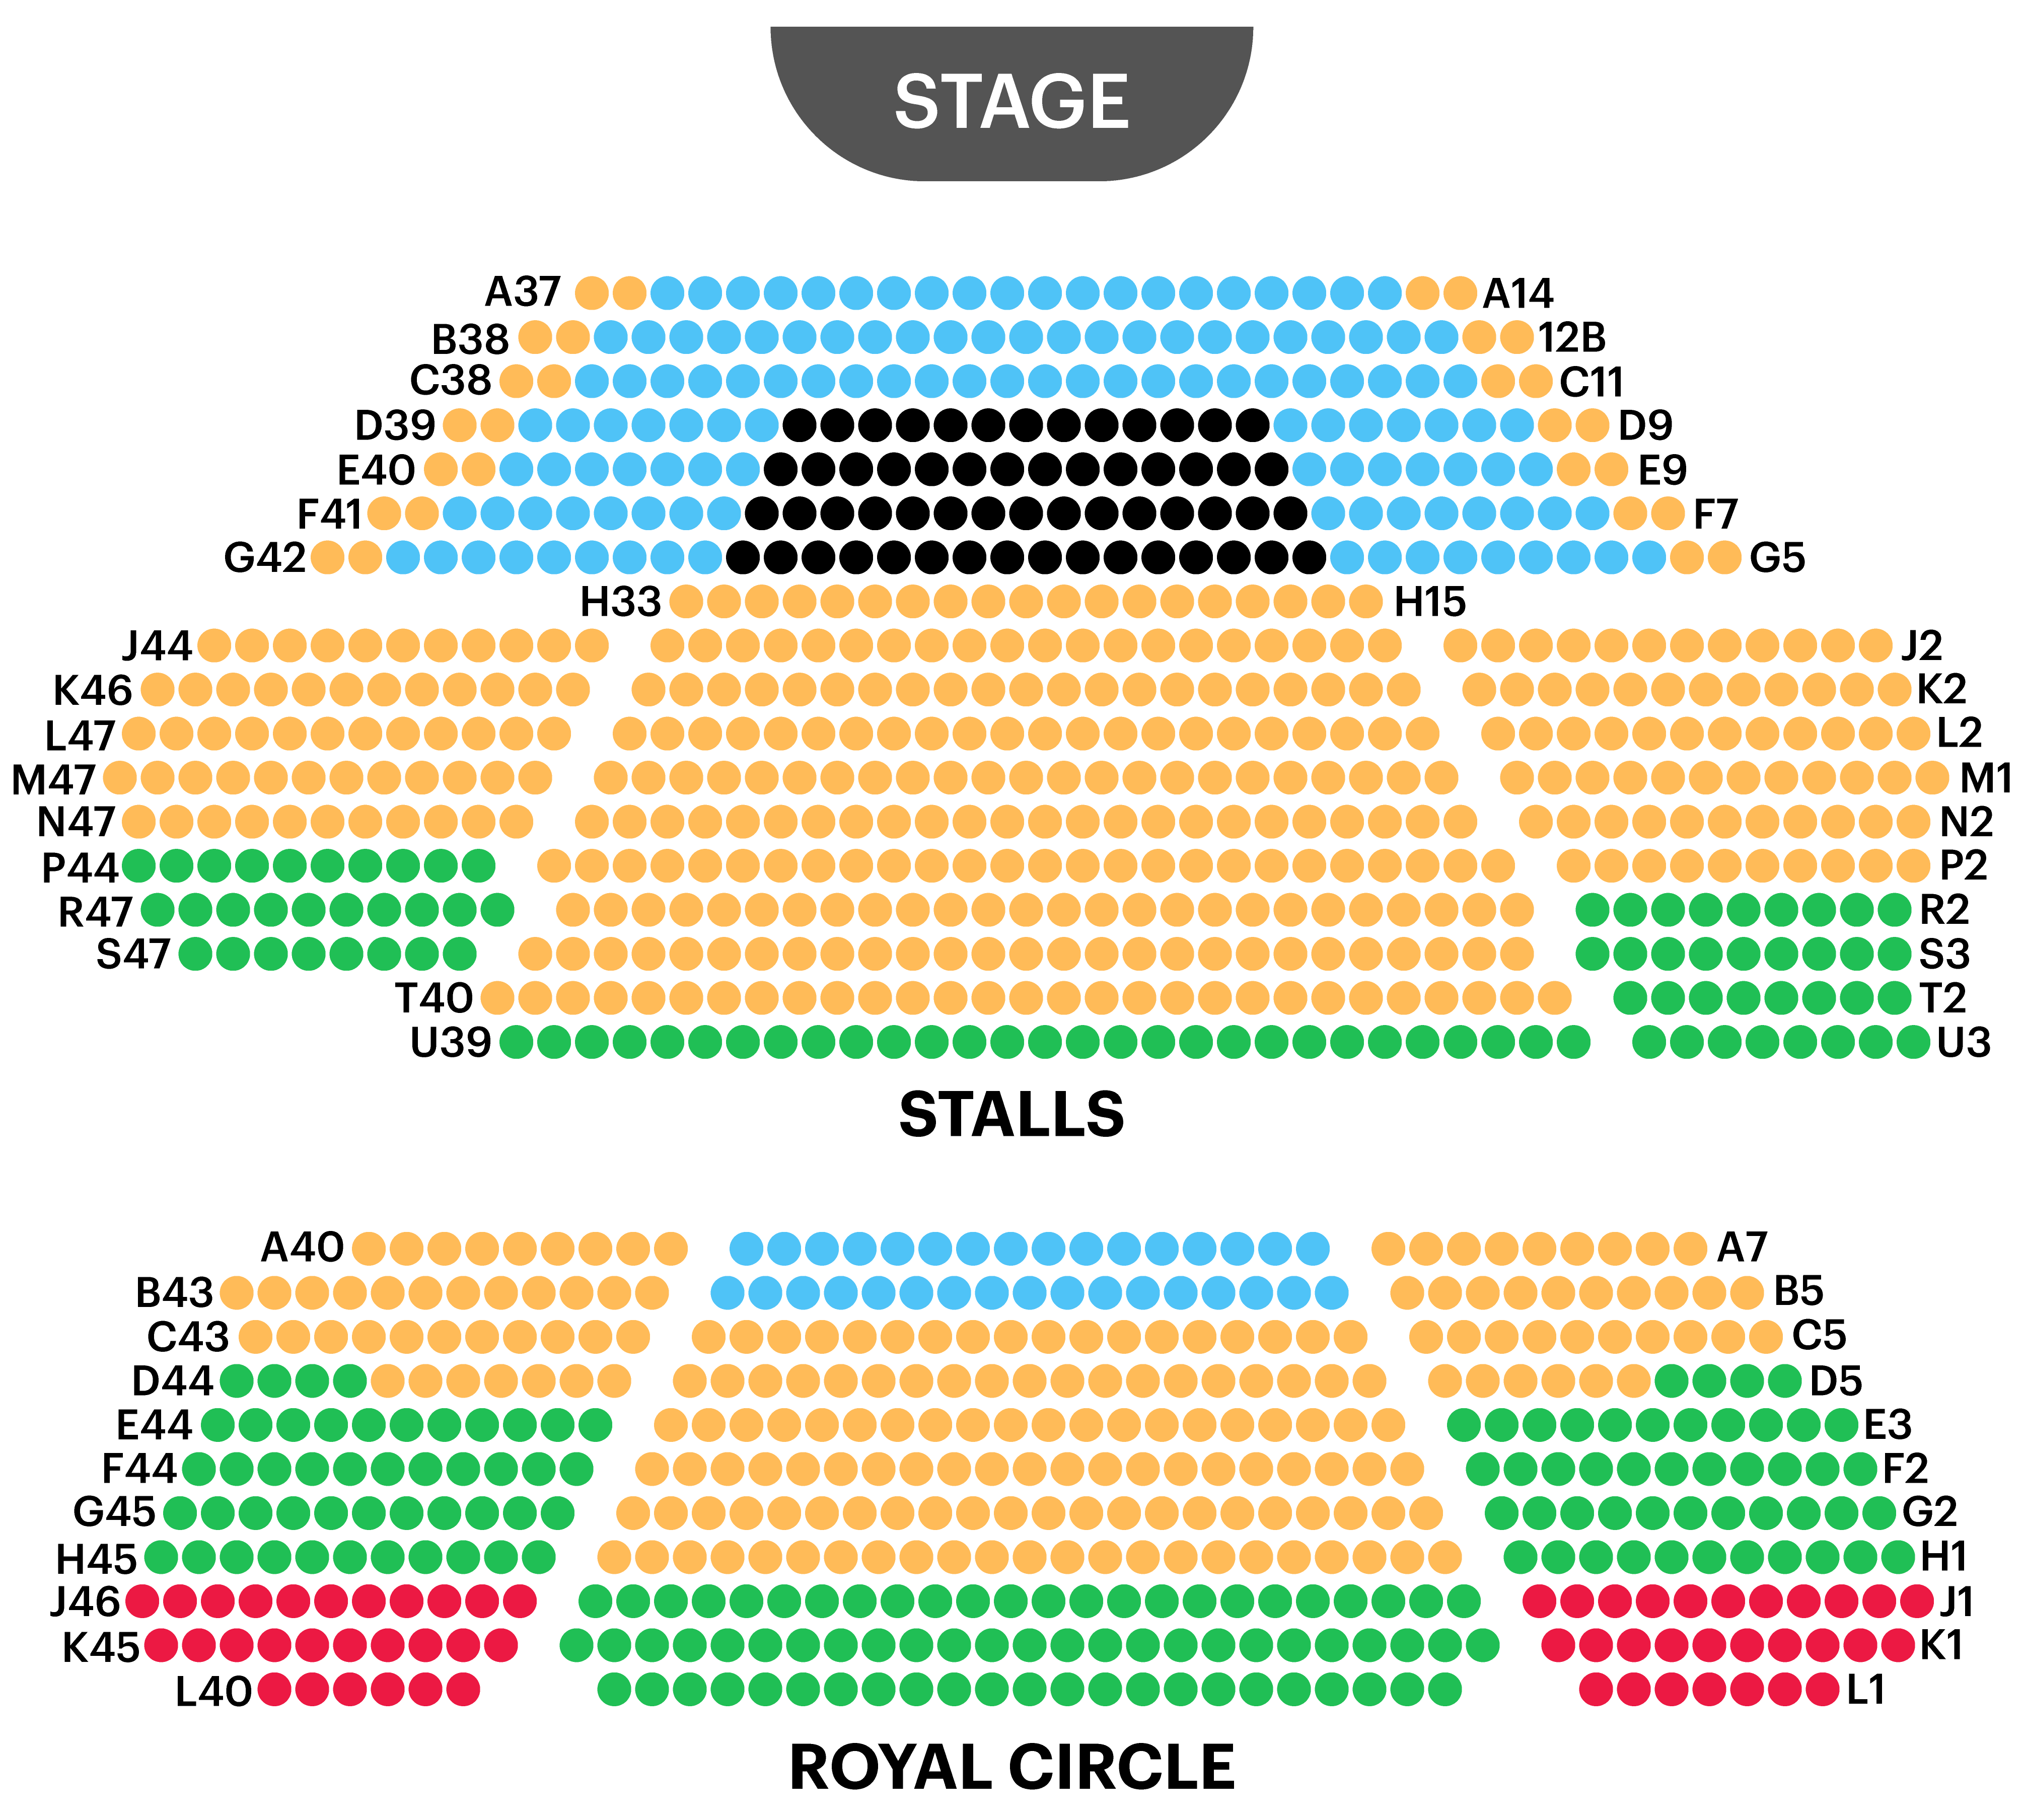 Prince of Wales Theatre Seating Map